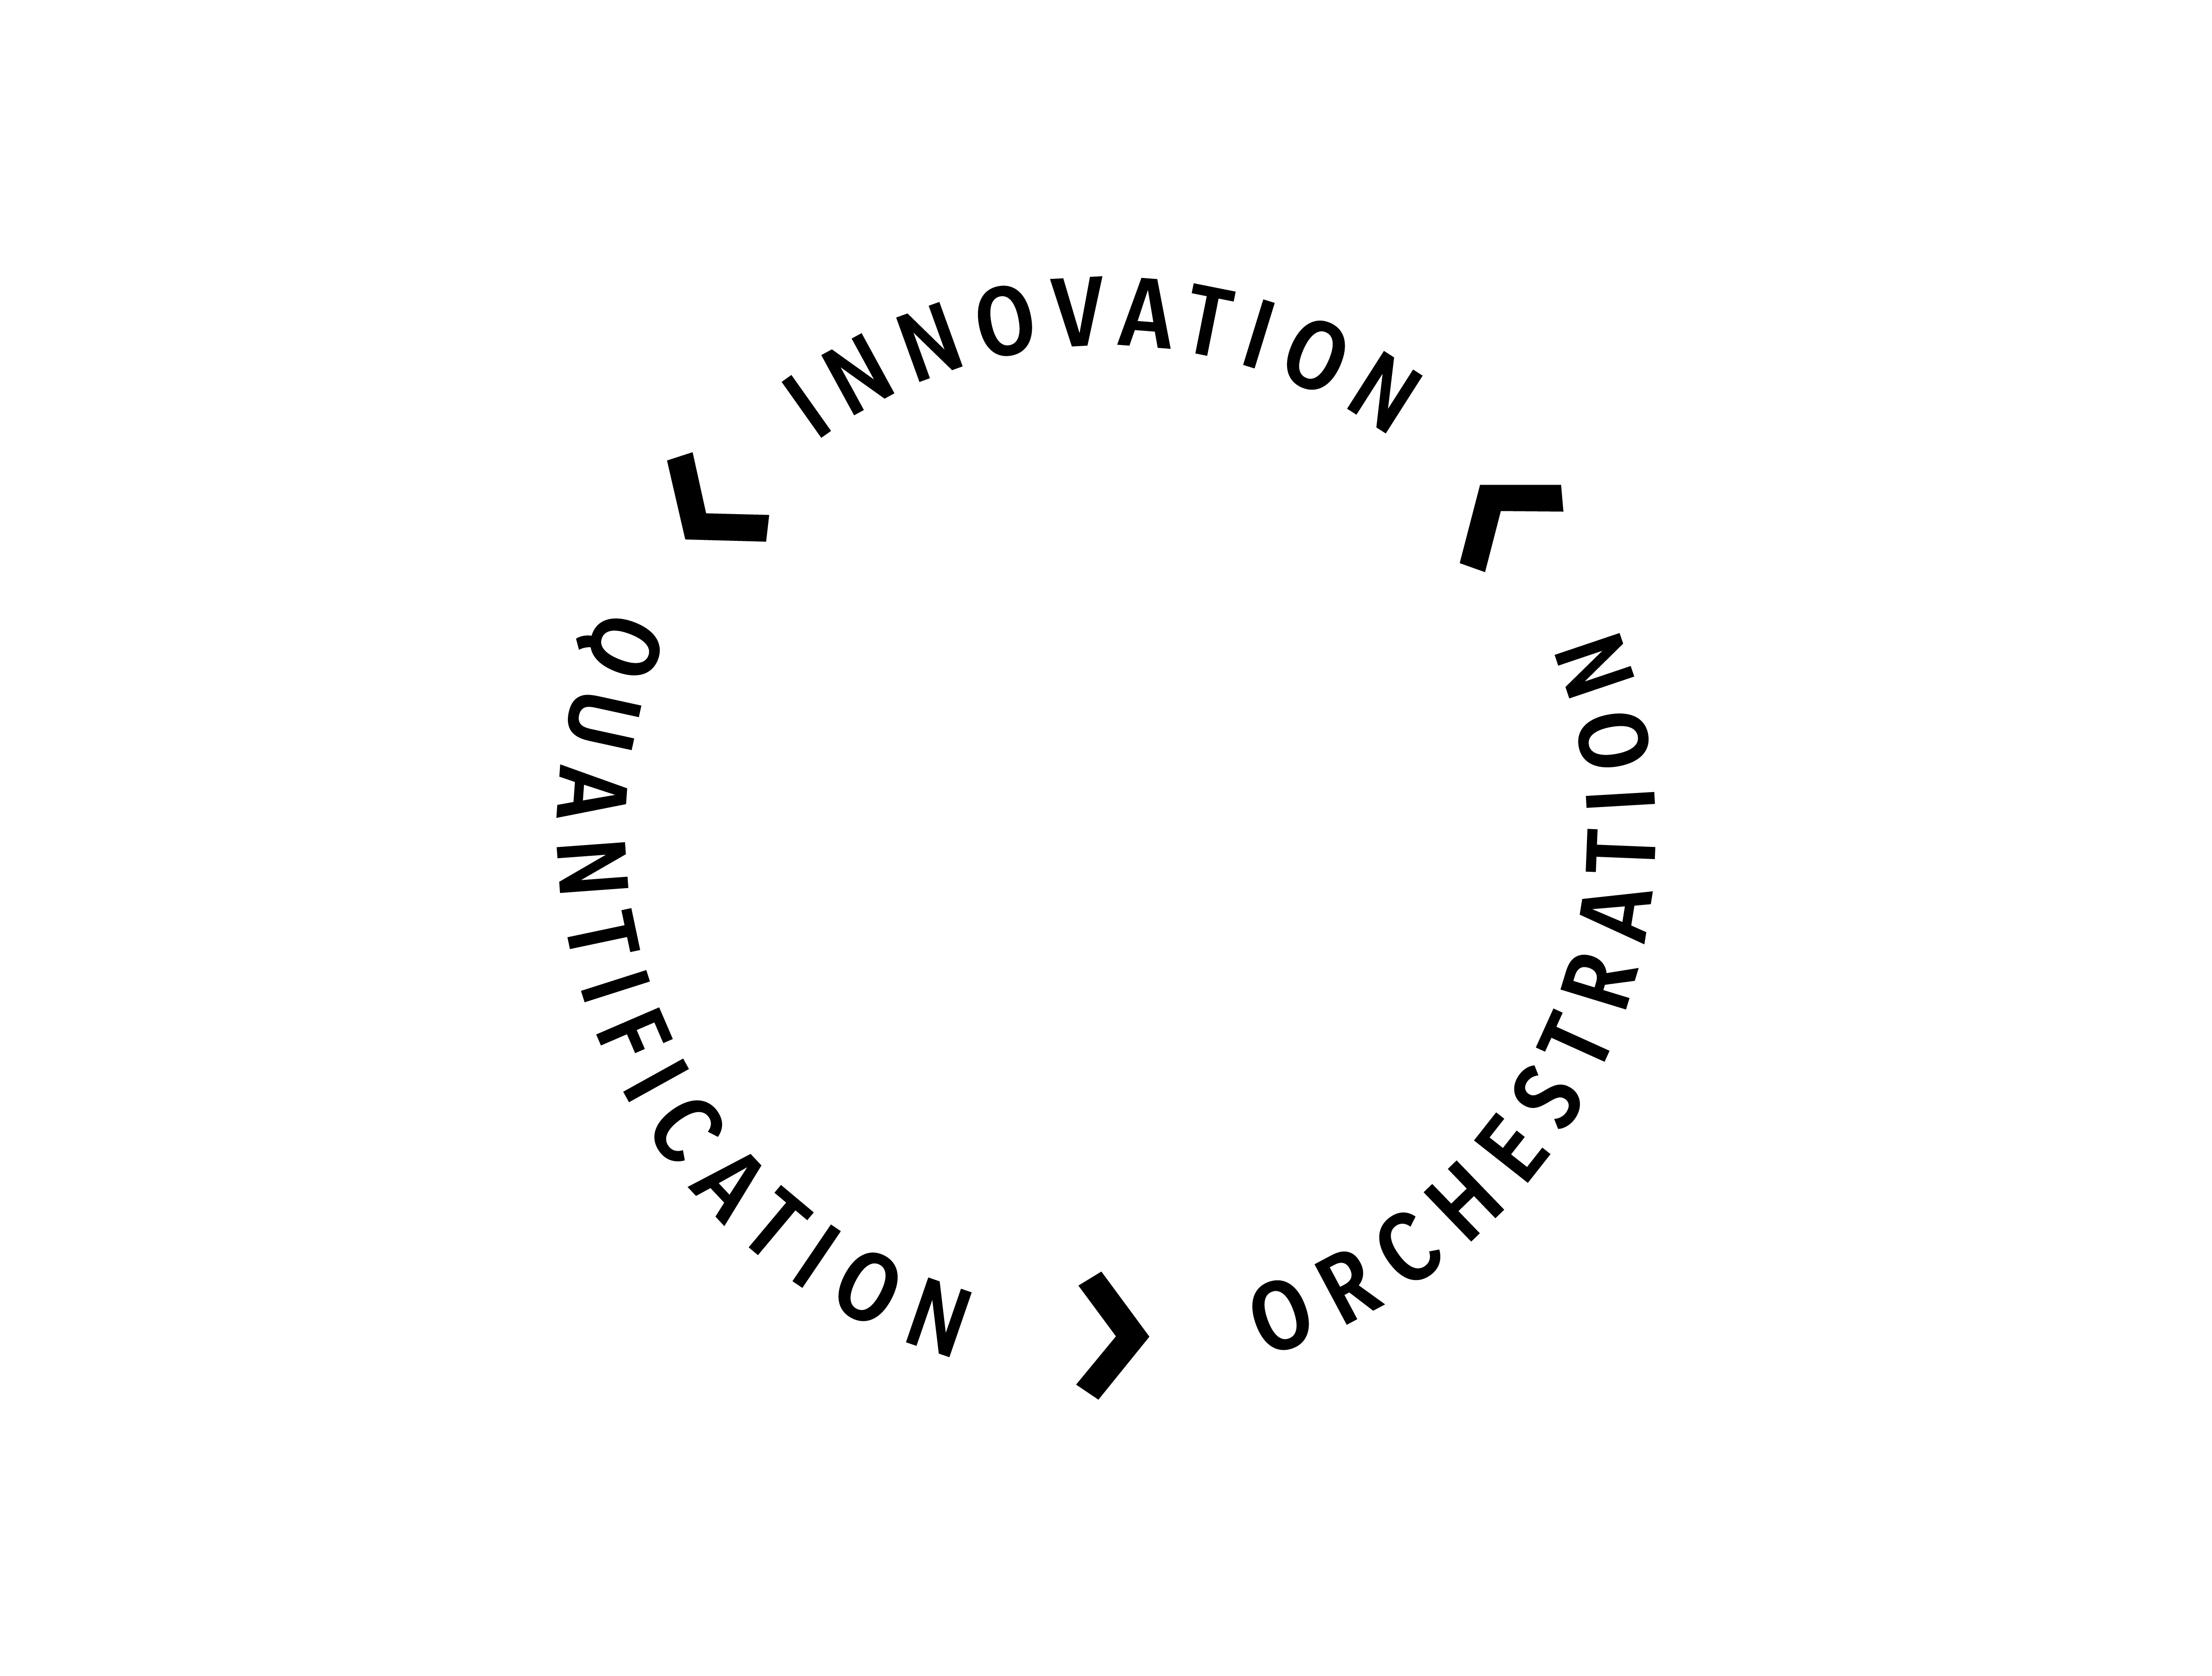 innovation quantification orchestration